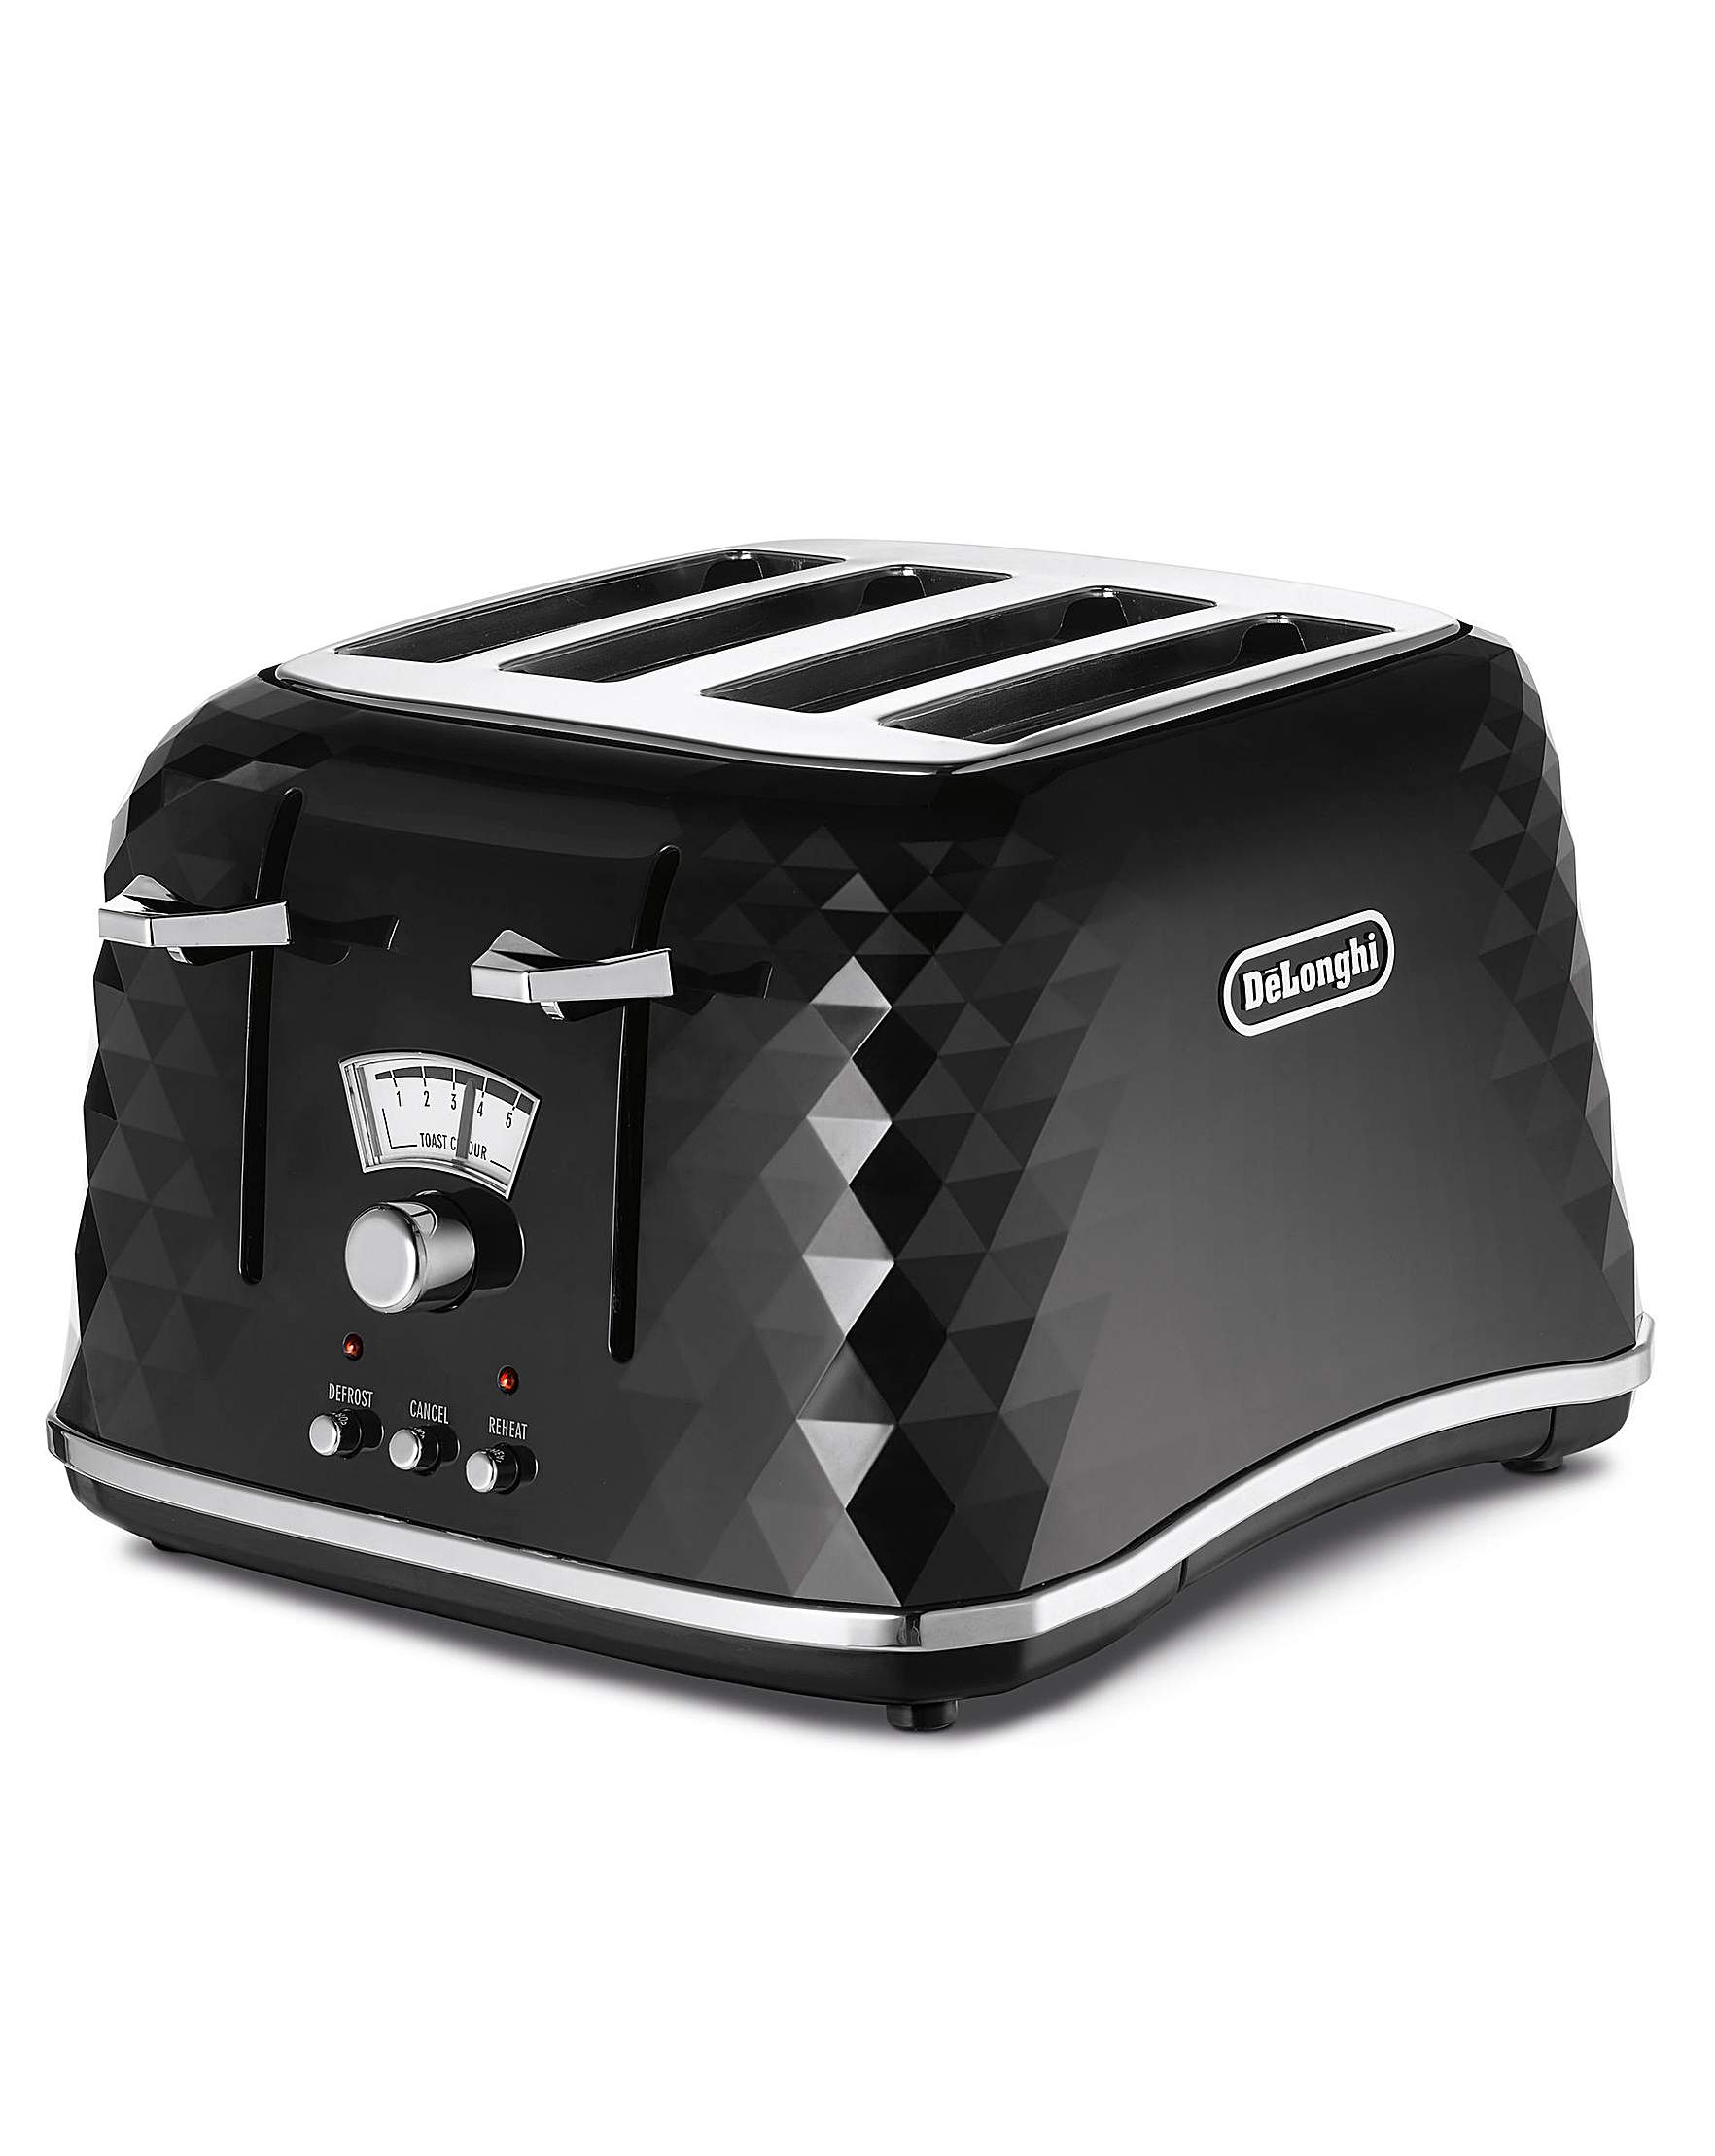 see through shipping over on product orders garden toaster overstock home free automatic black itouchless